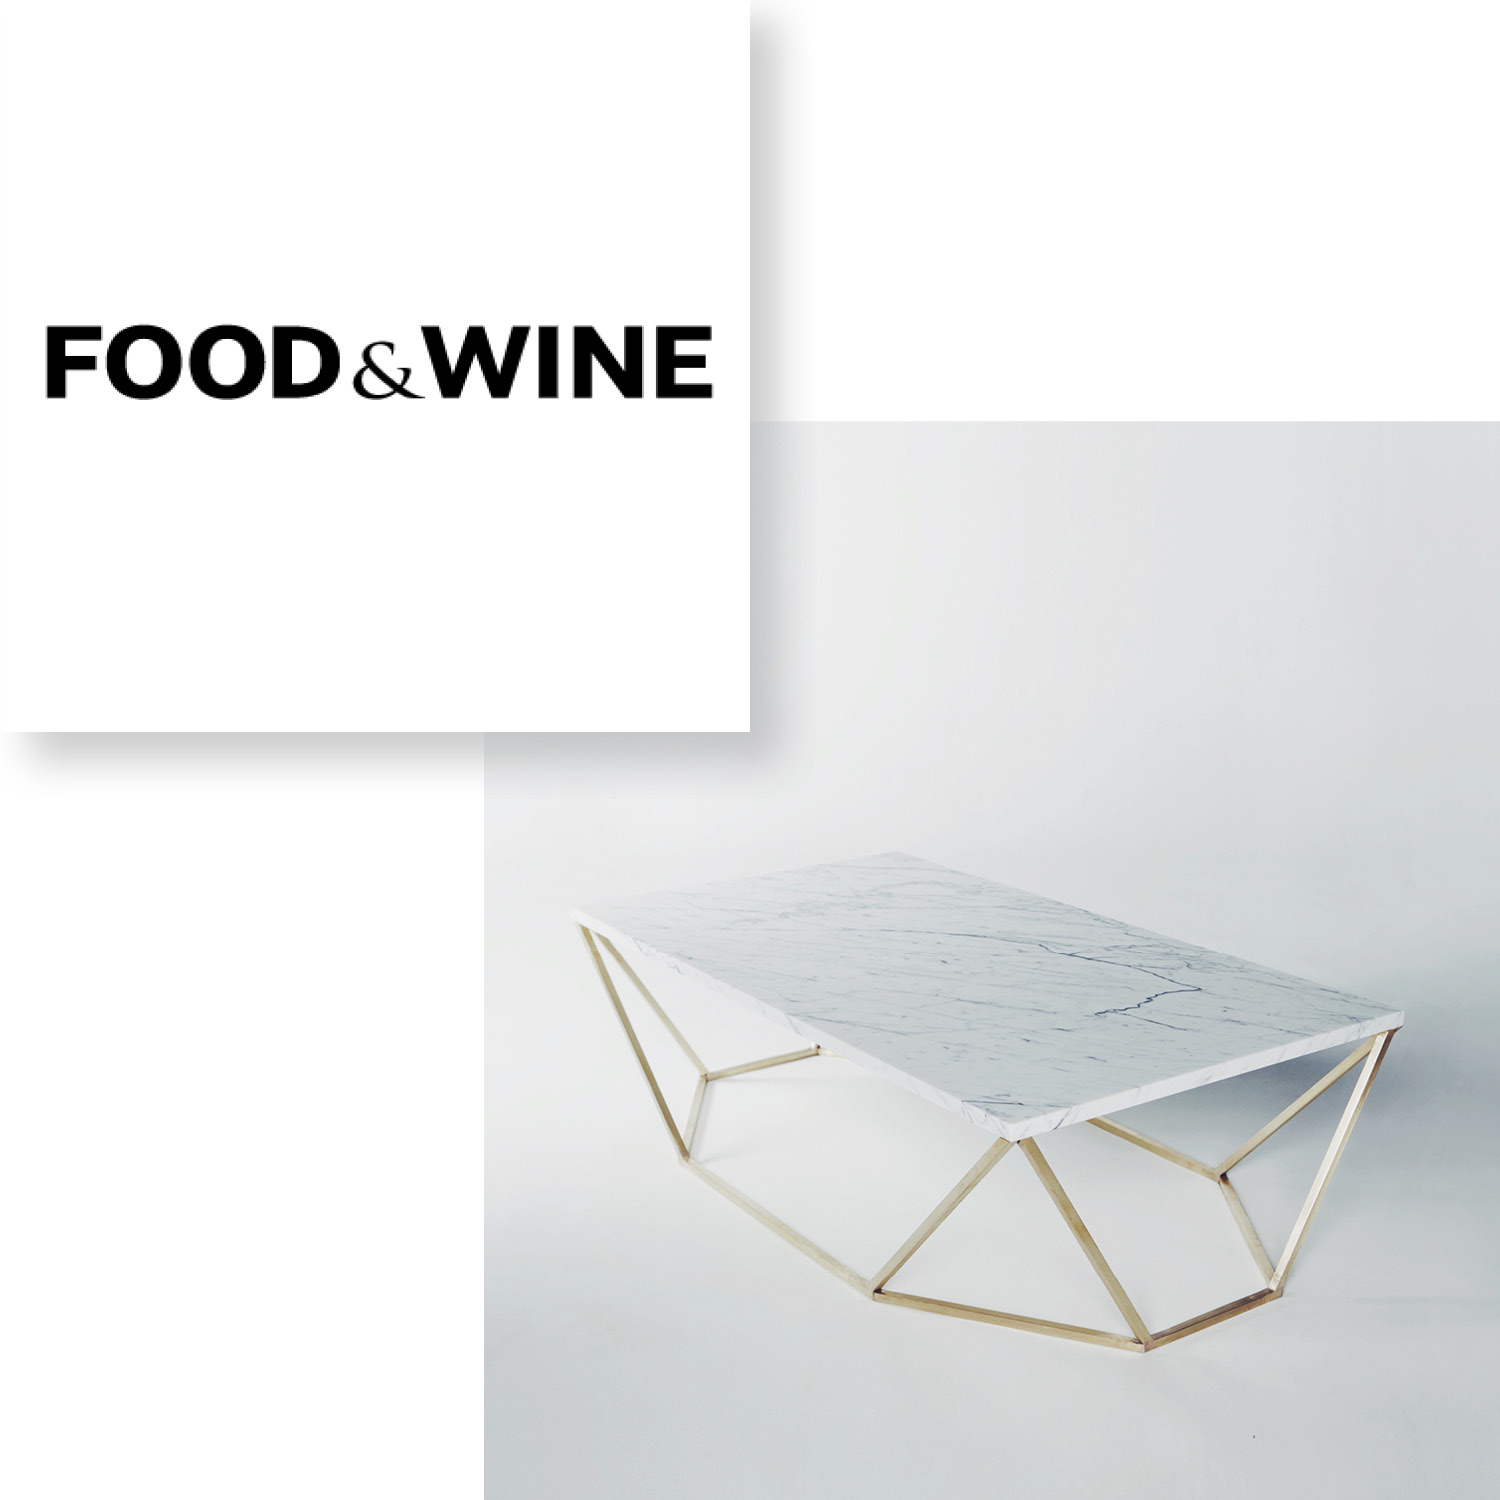 Food & Wine, July 2016